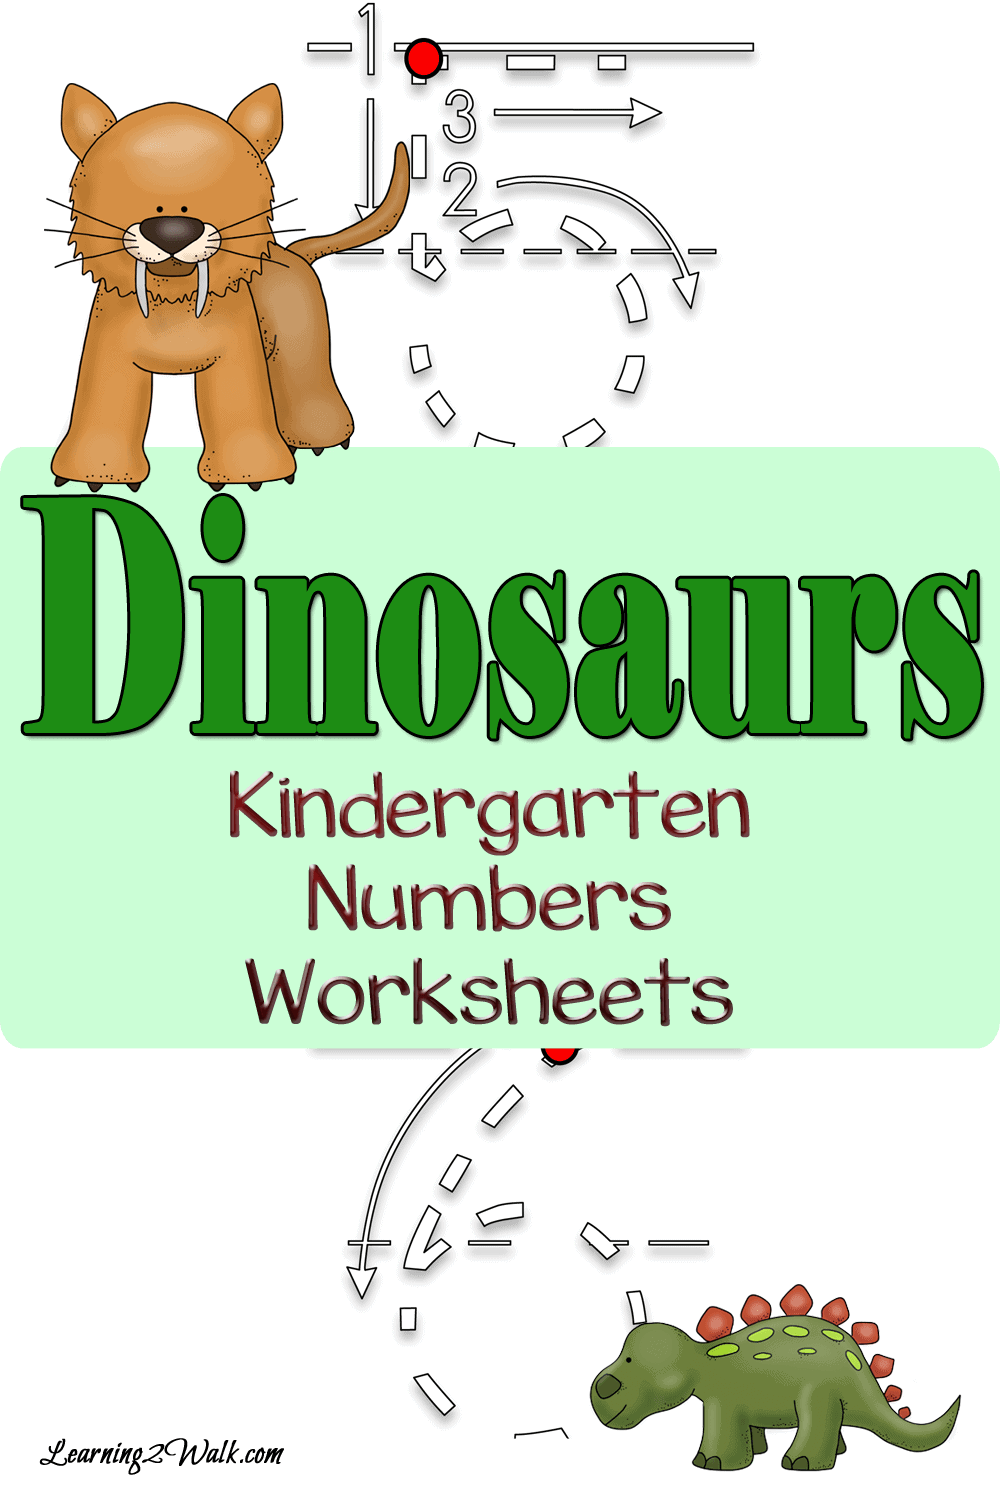 math worksheet : middle school math worksheets free printables dinosaur  : Dinosaur Math Worksheets